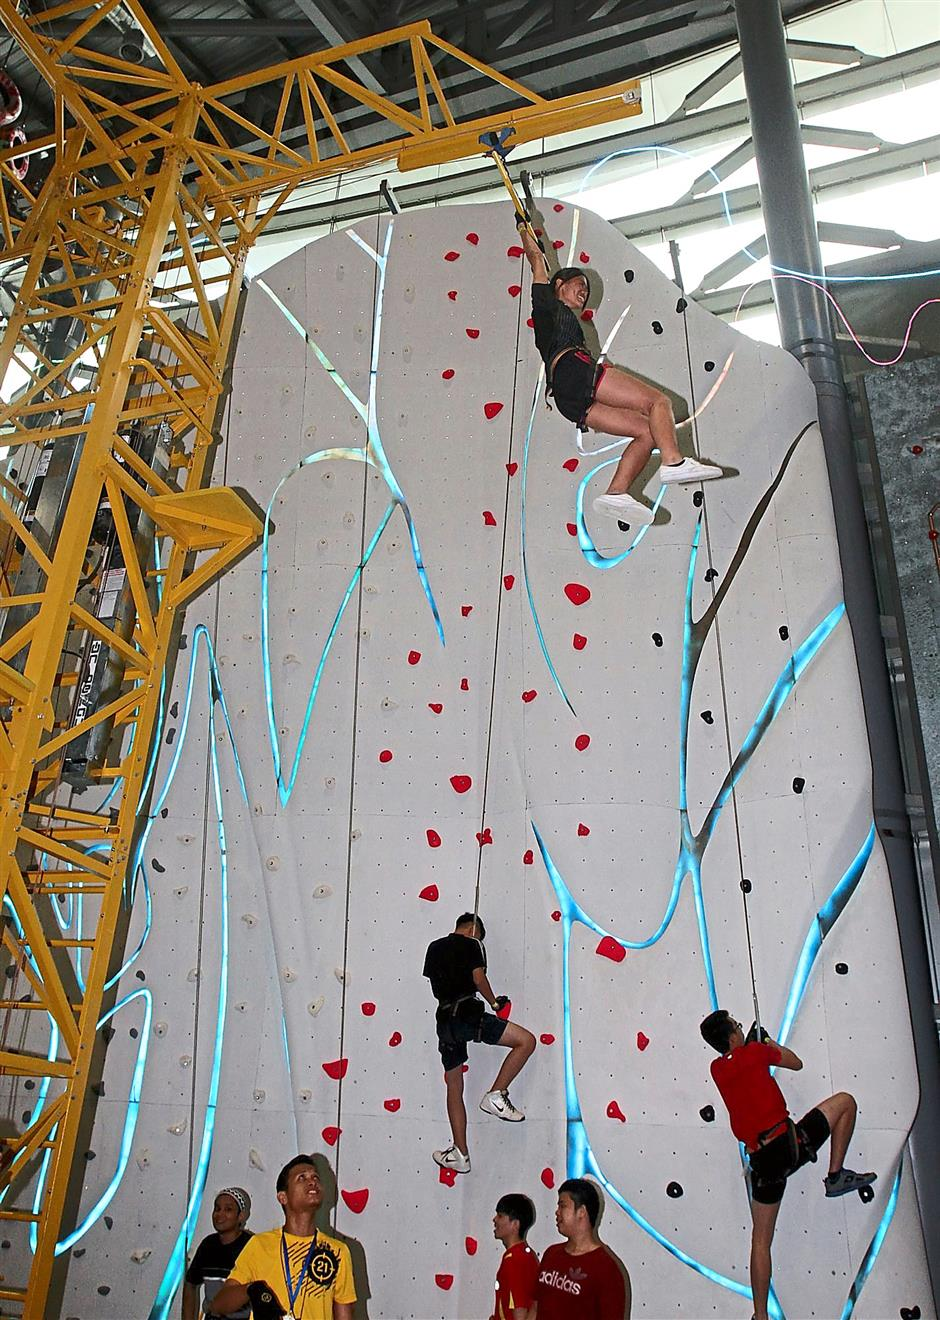 Patrons can challenge themselves at 16 different obstacles at the Power Station, which is an interactive climbing area equipped with autobelays for increased safety.